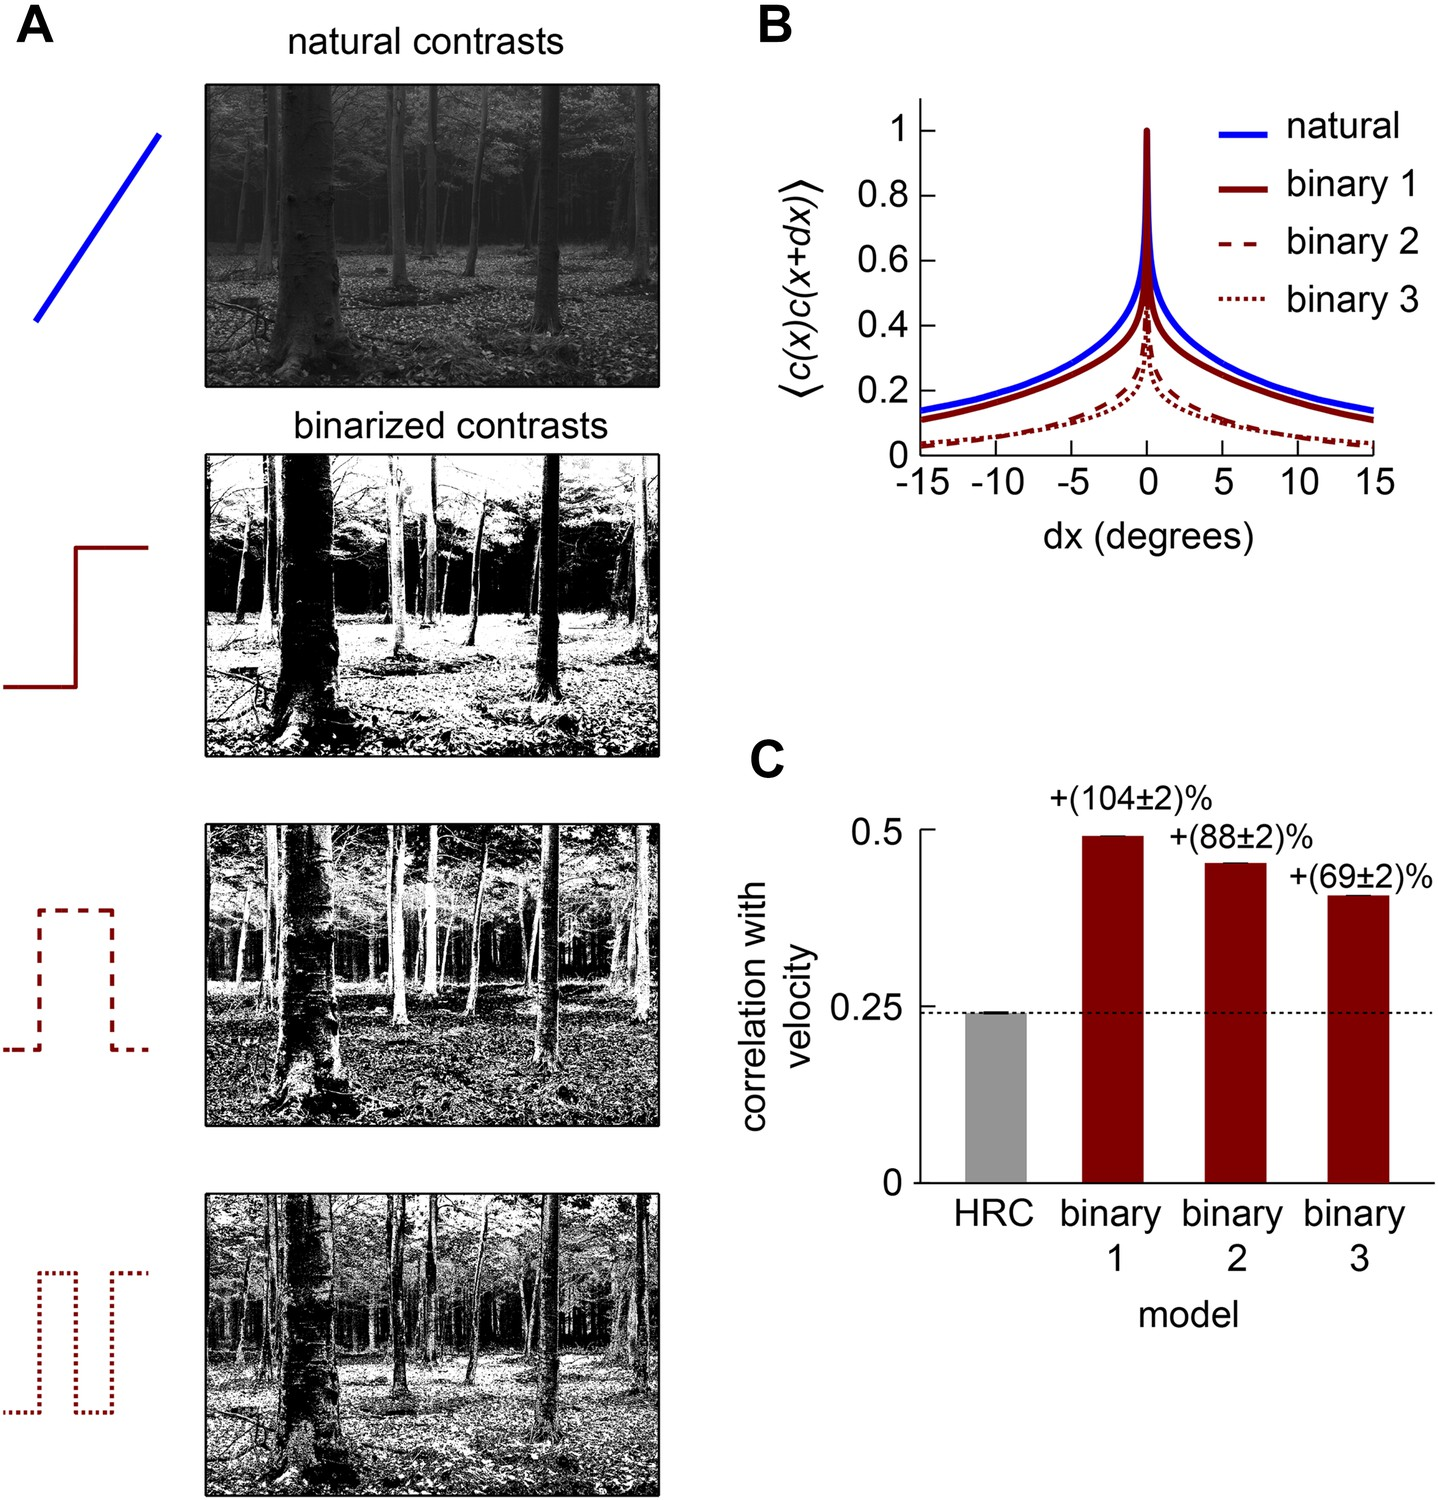 Nonlinear Circuits For Naturalistic Visual Motion Estimation Elife What Do We If Come Across A Circuit More Complex Than The Simple Correlations In Binarized Natural Images